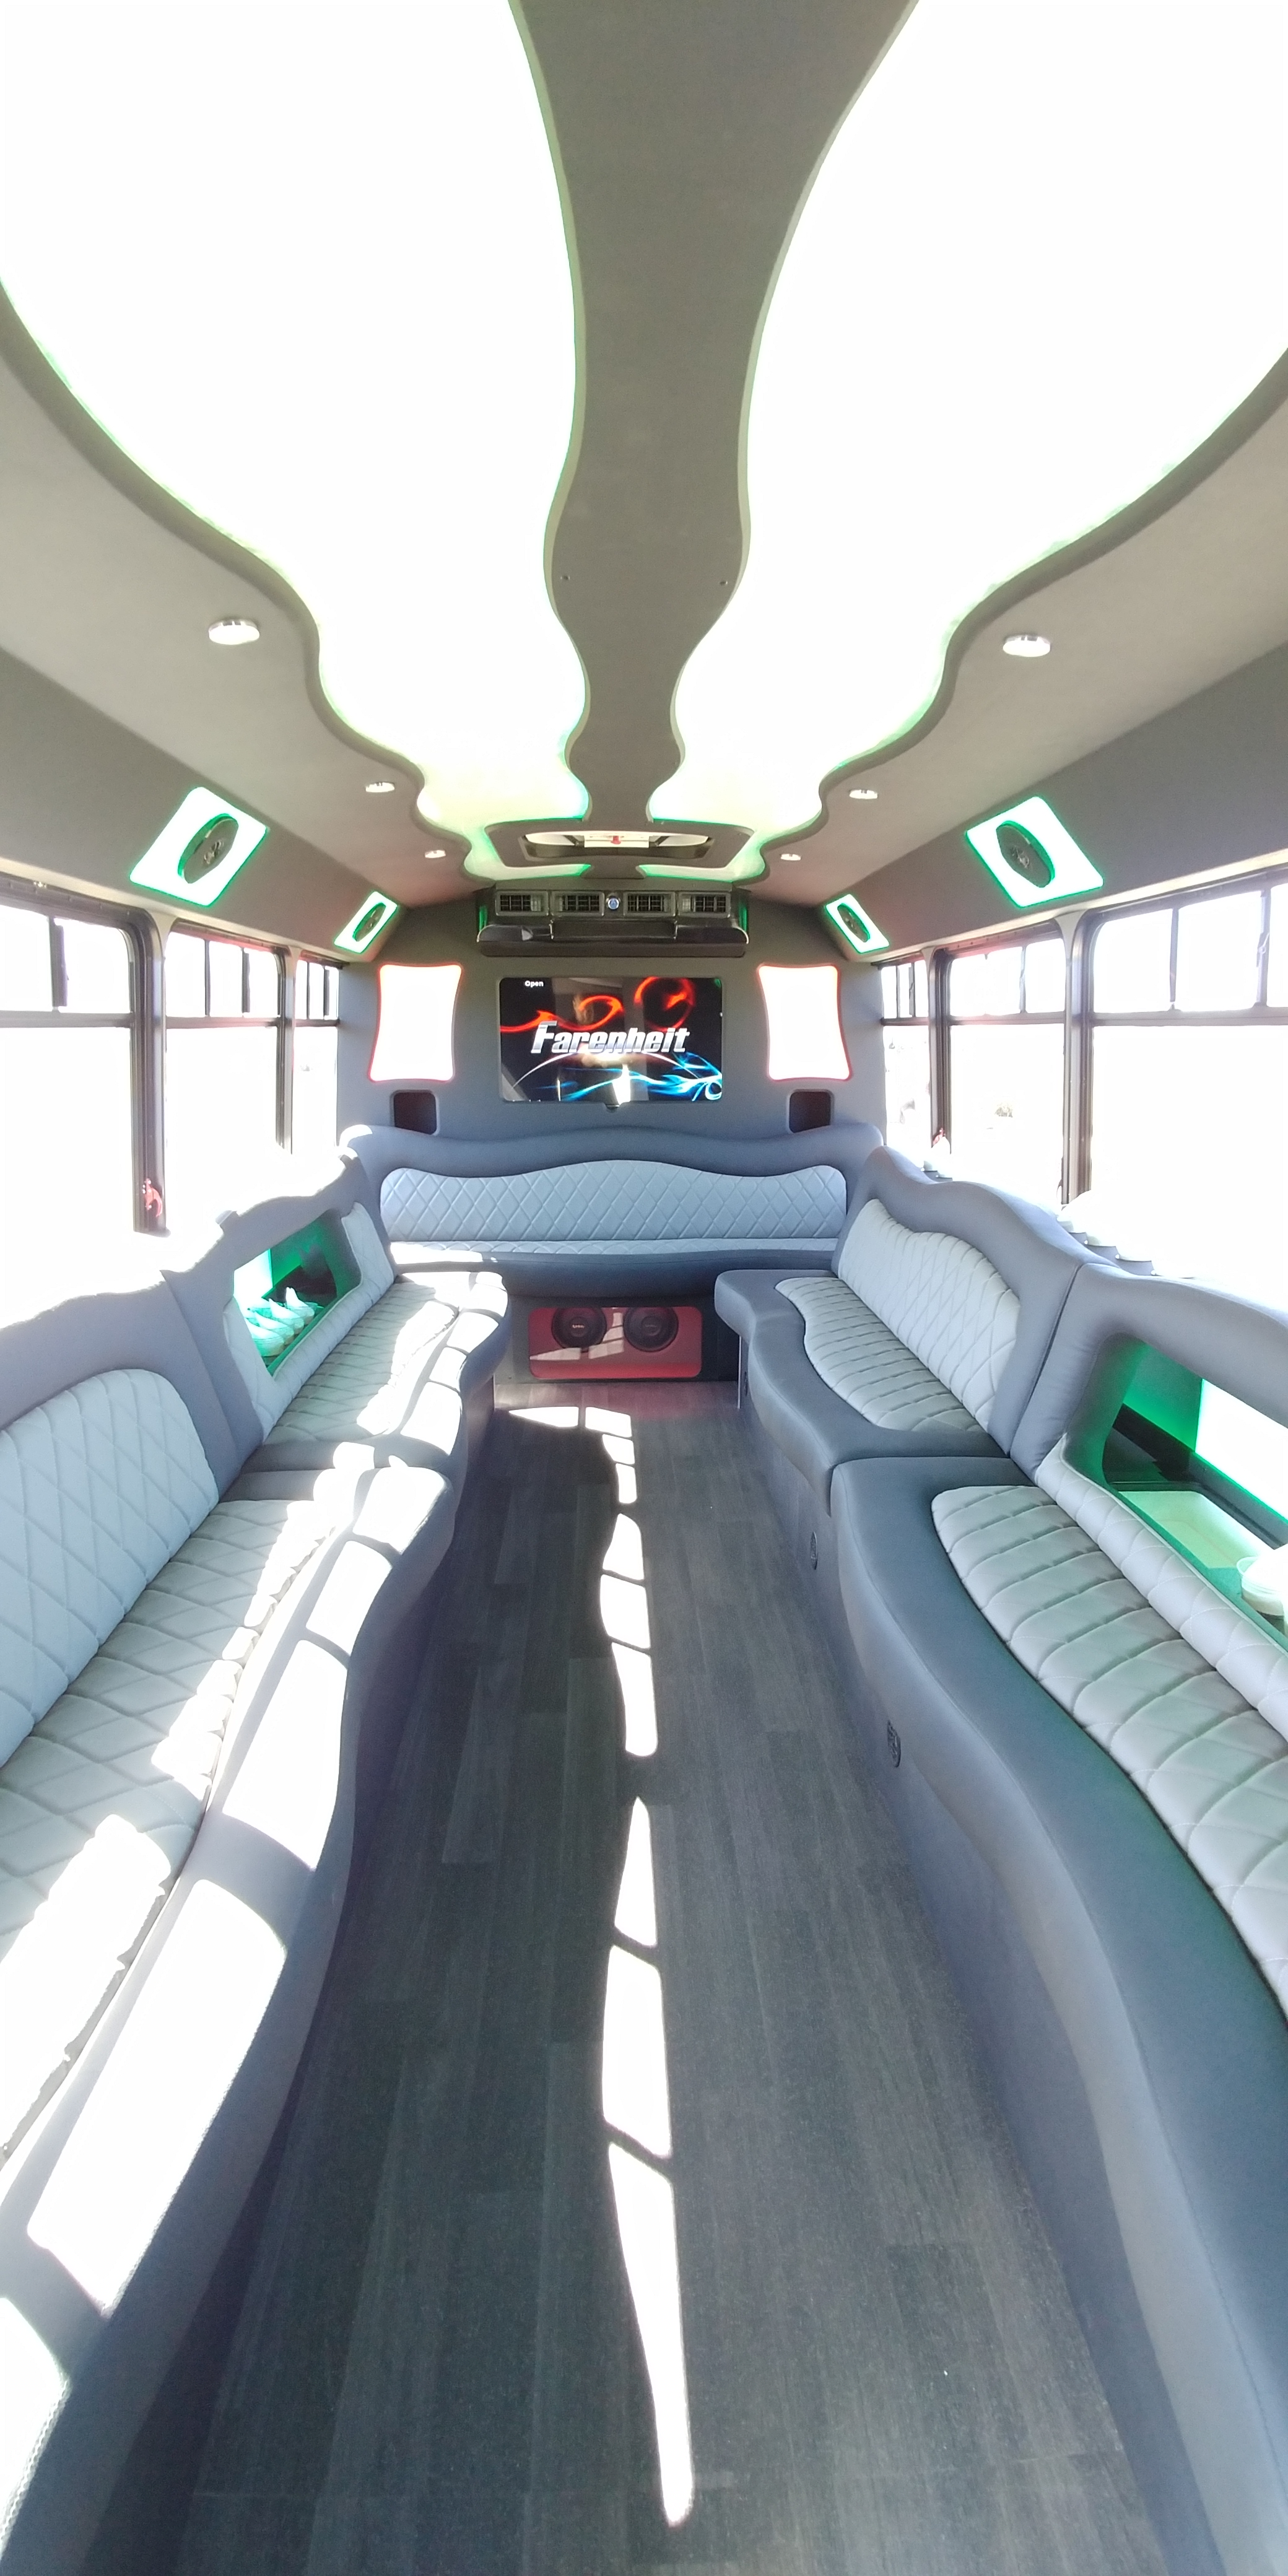 18 Passenger Luxury Limo Bus Interior 3